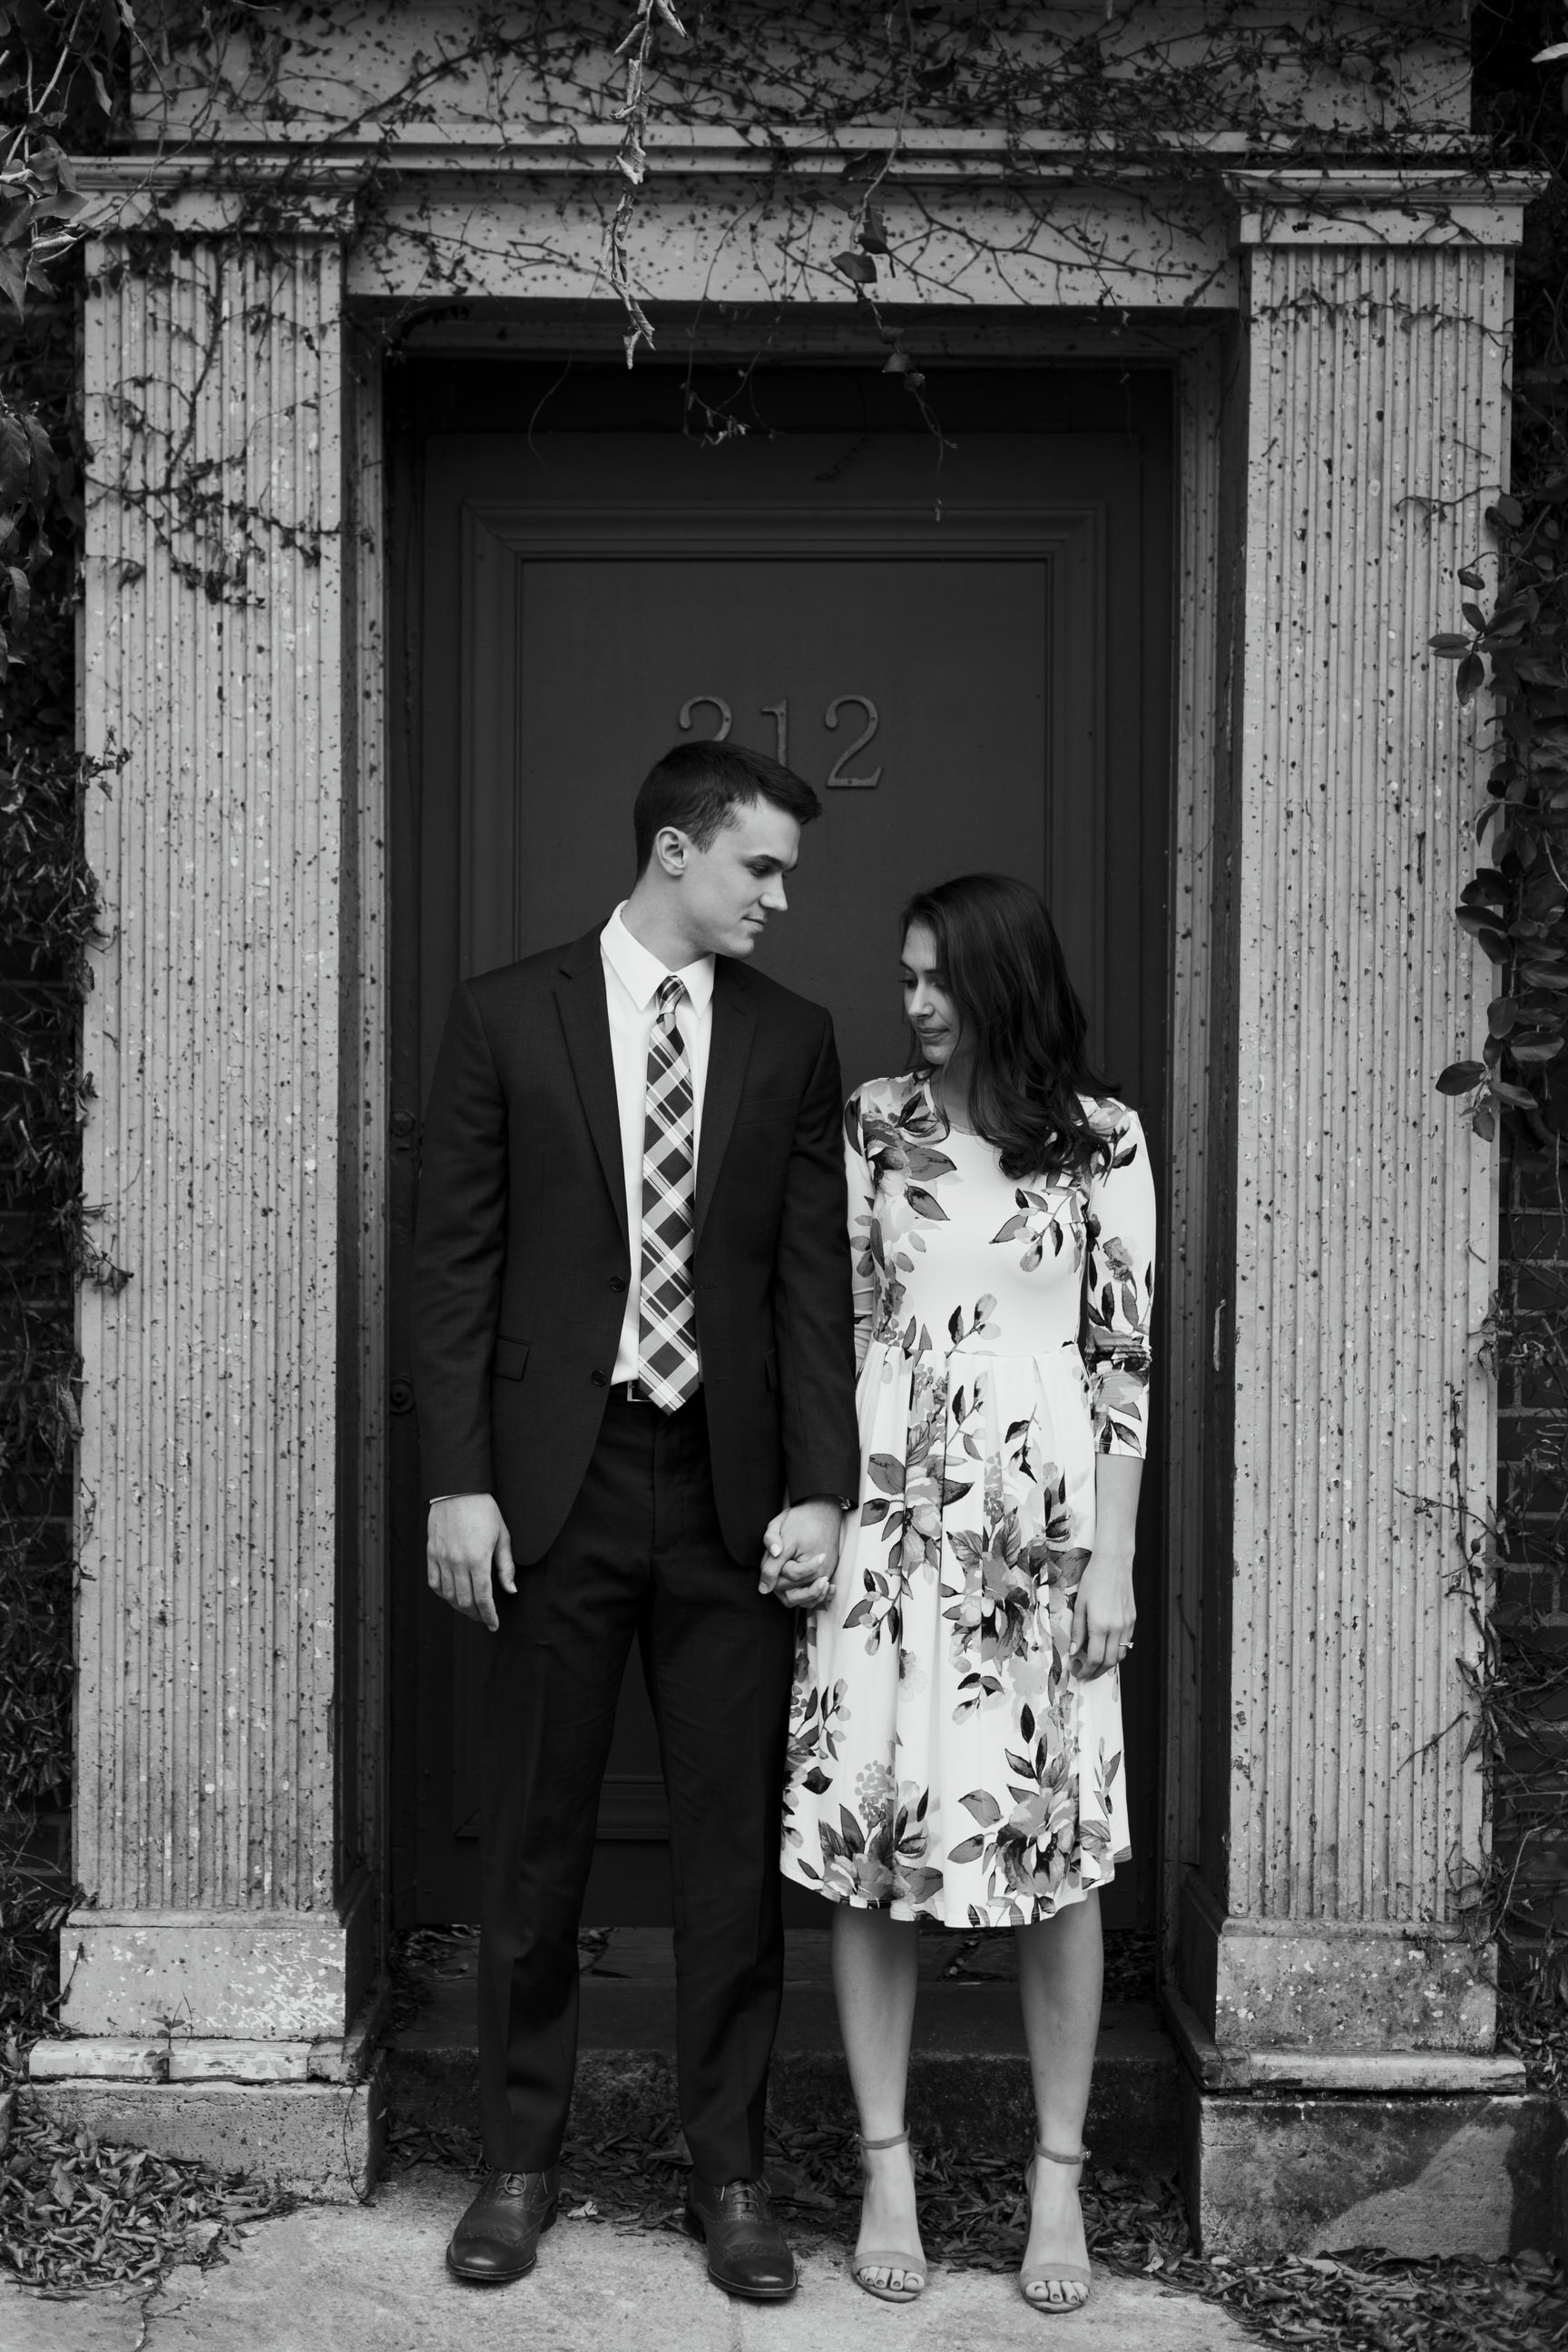 downtown-wilmington-nc-wedding-photographer-callie-hunter_24.jpg